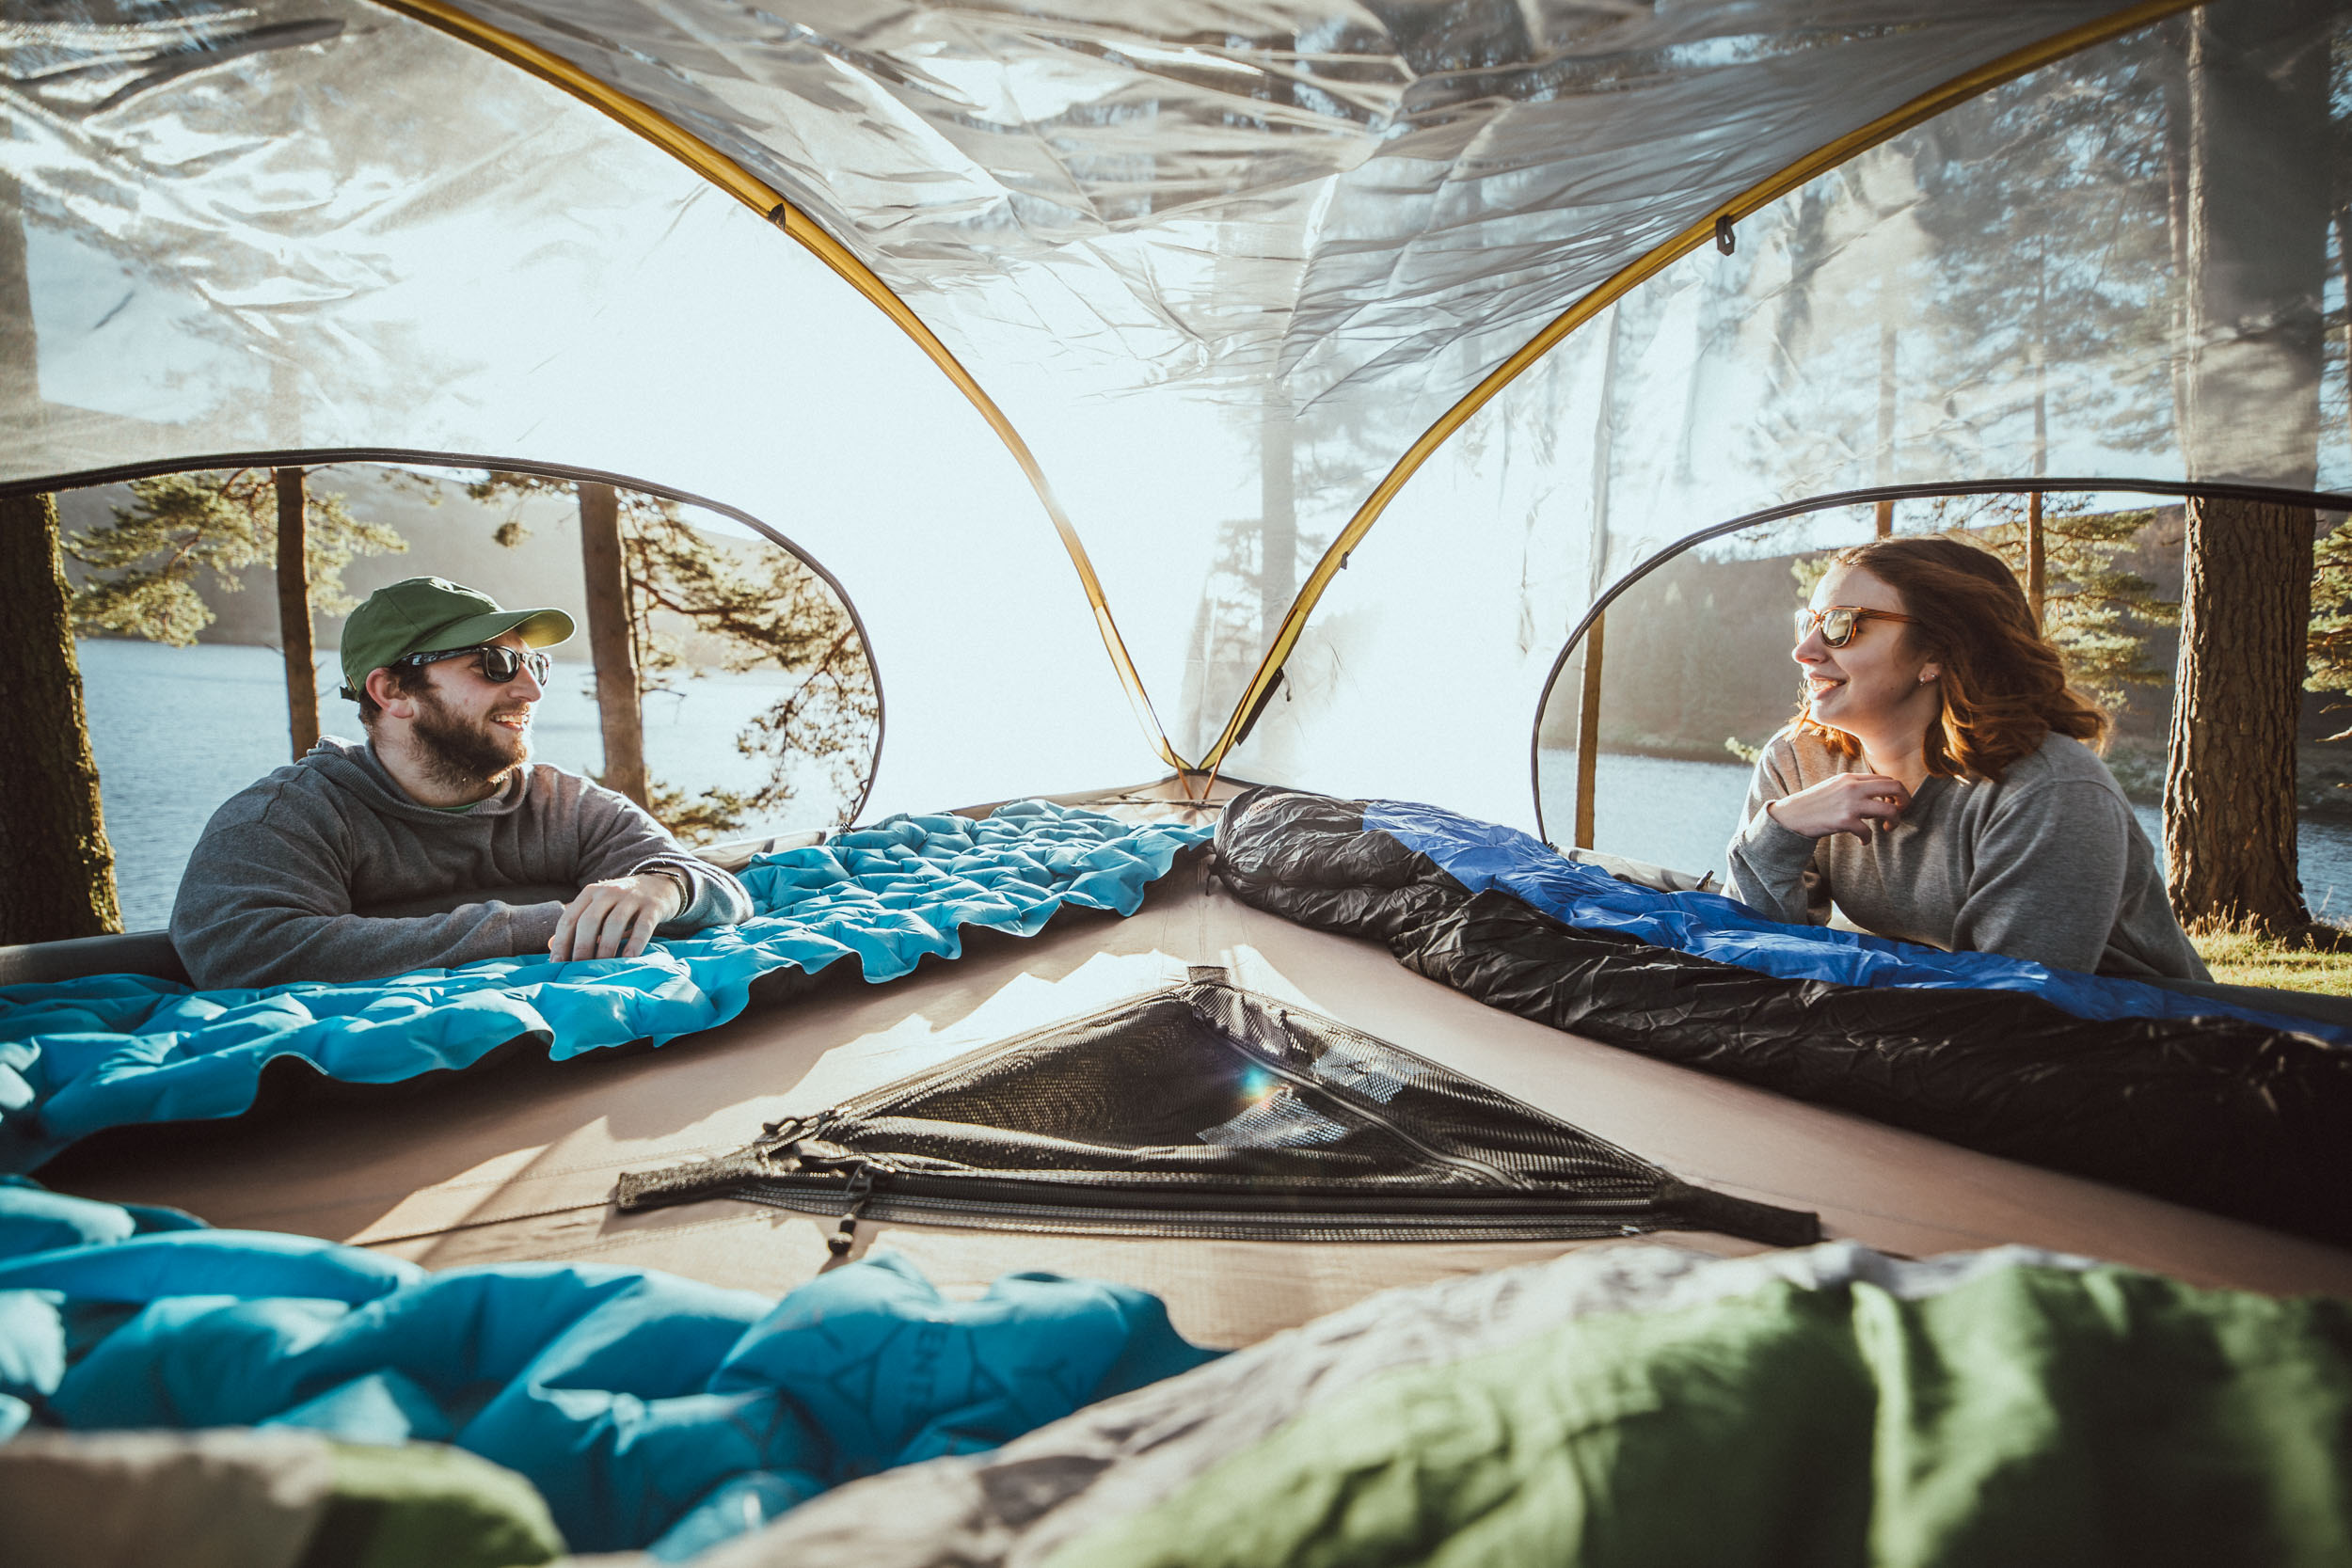 Tentsile_Safaria_Lifestyle_ByTomkahler_Lowres (19 of 63).jpg